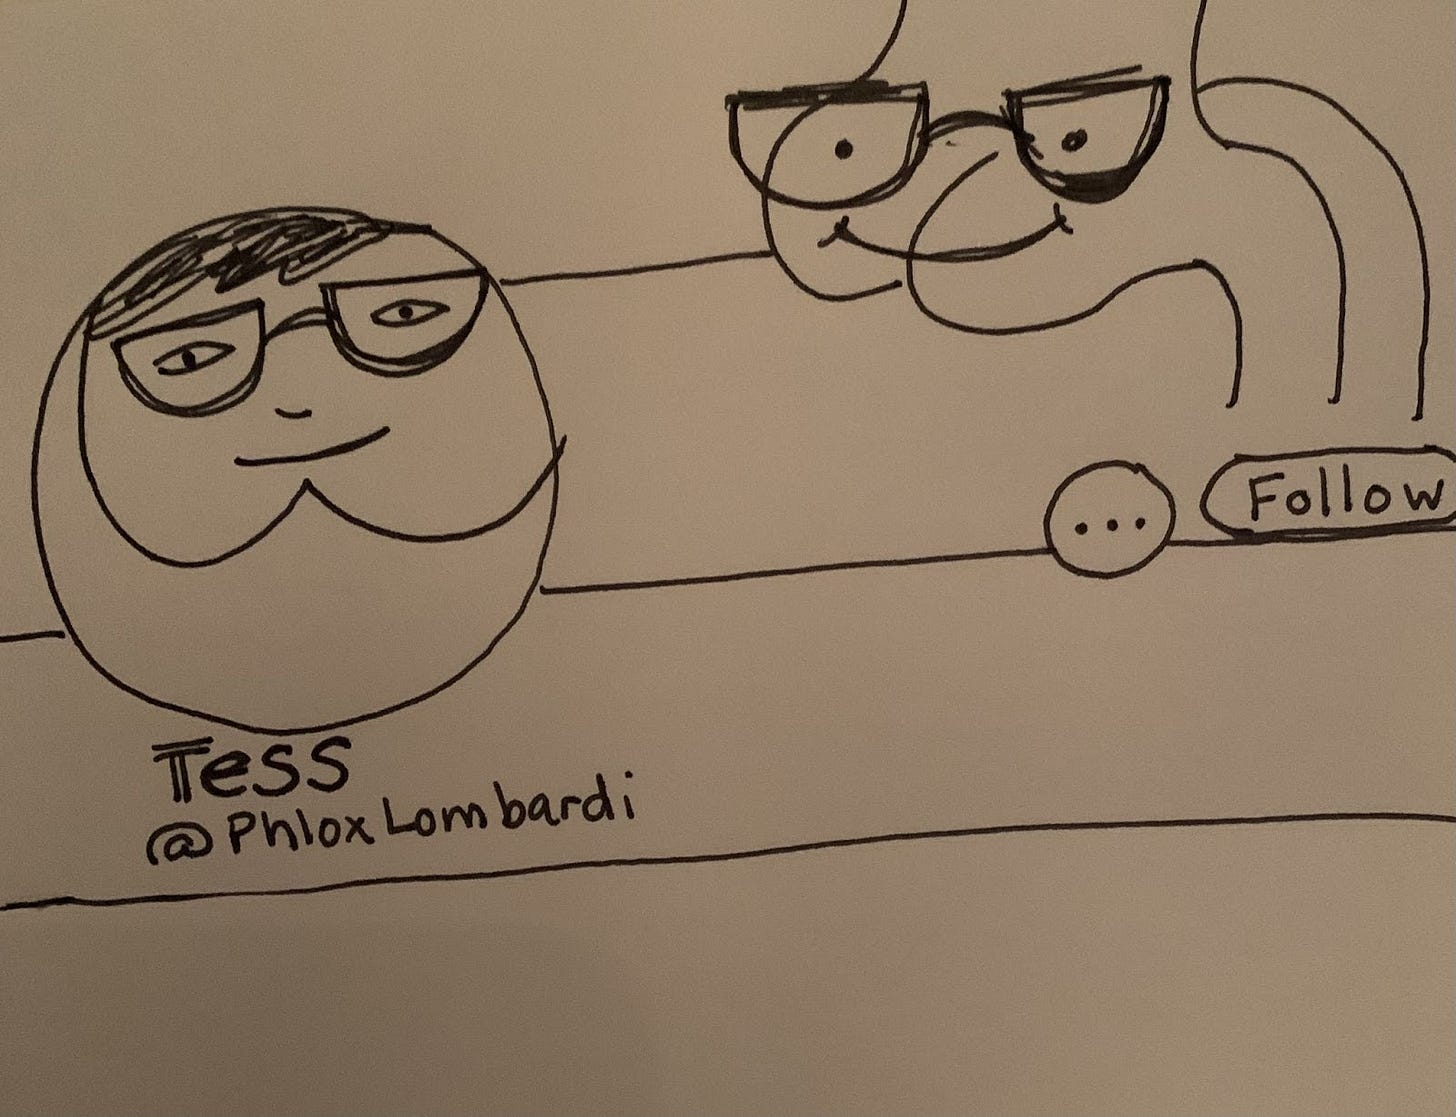 Sketch of a Twitter page with poorly-drawn butt face avatar and butt header